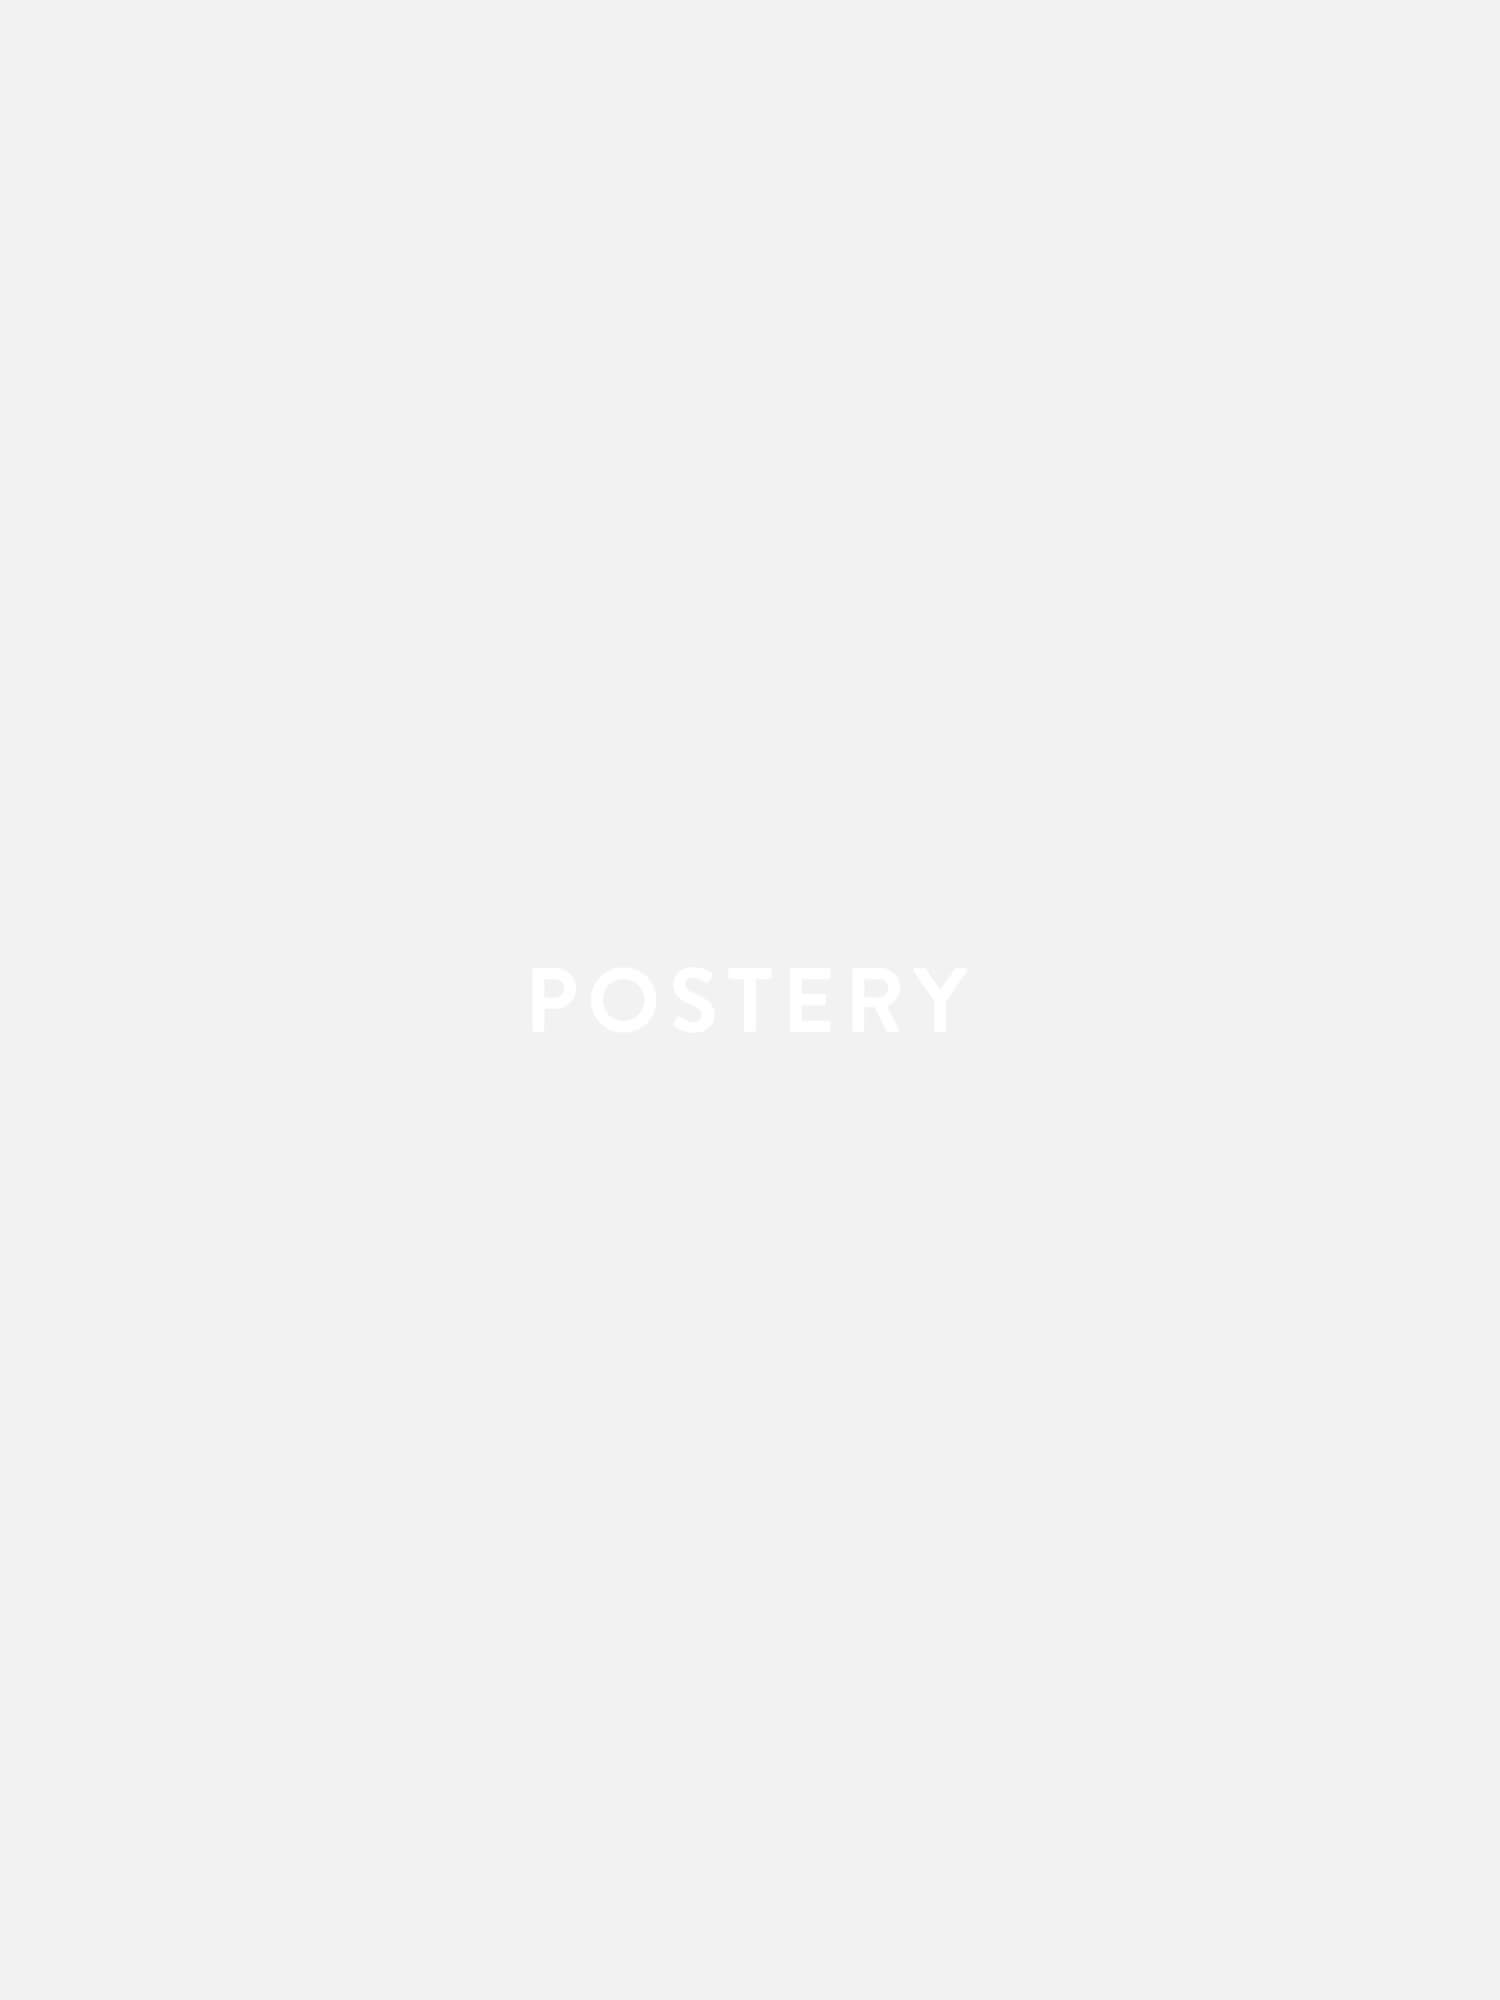 Hollywood Traffic Light Poster